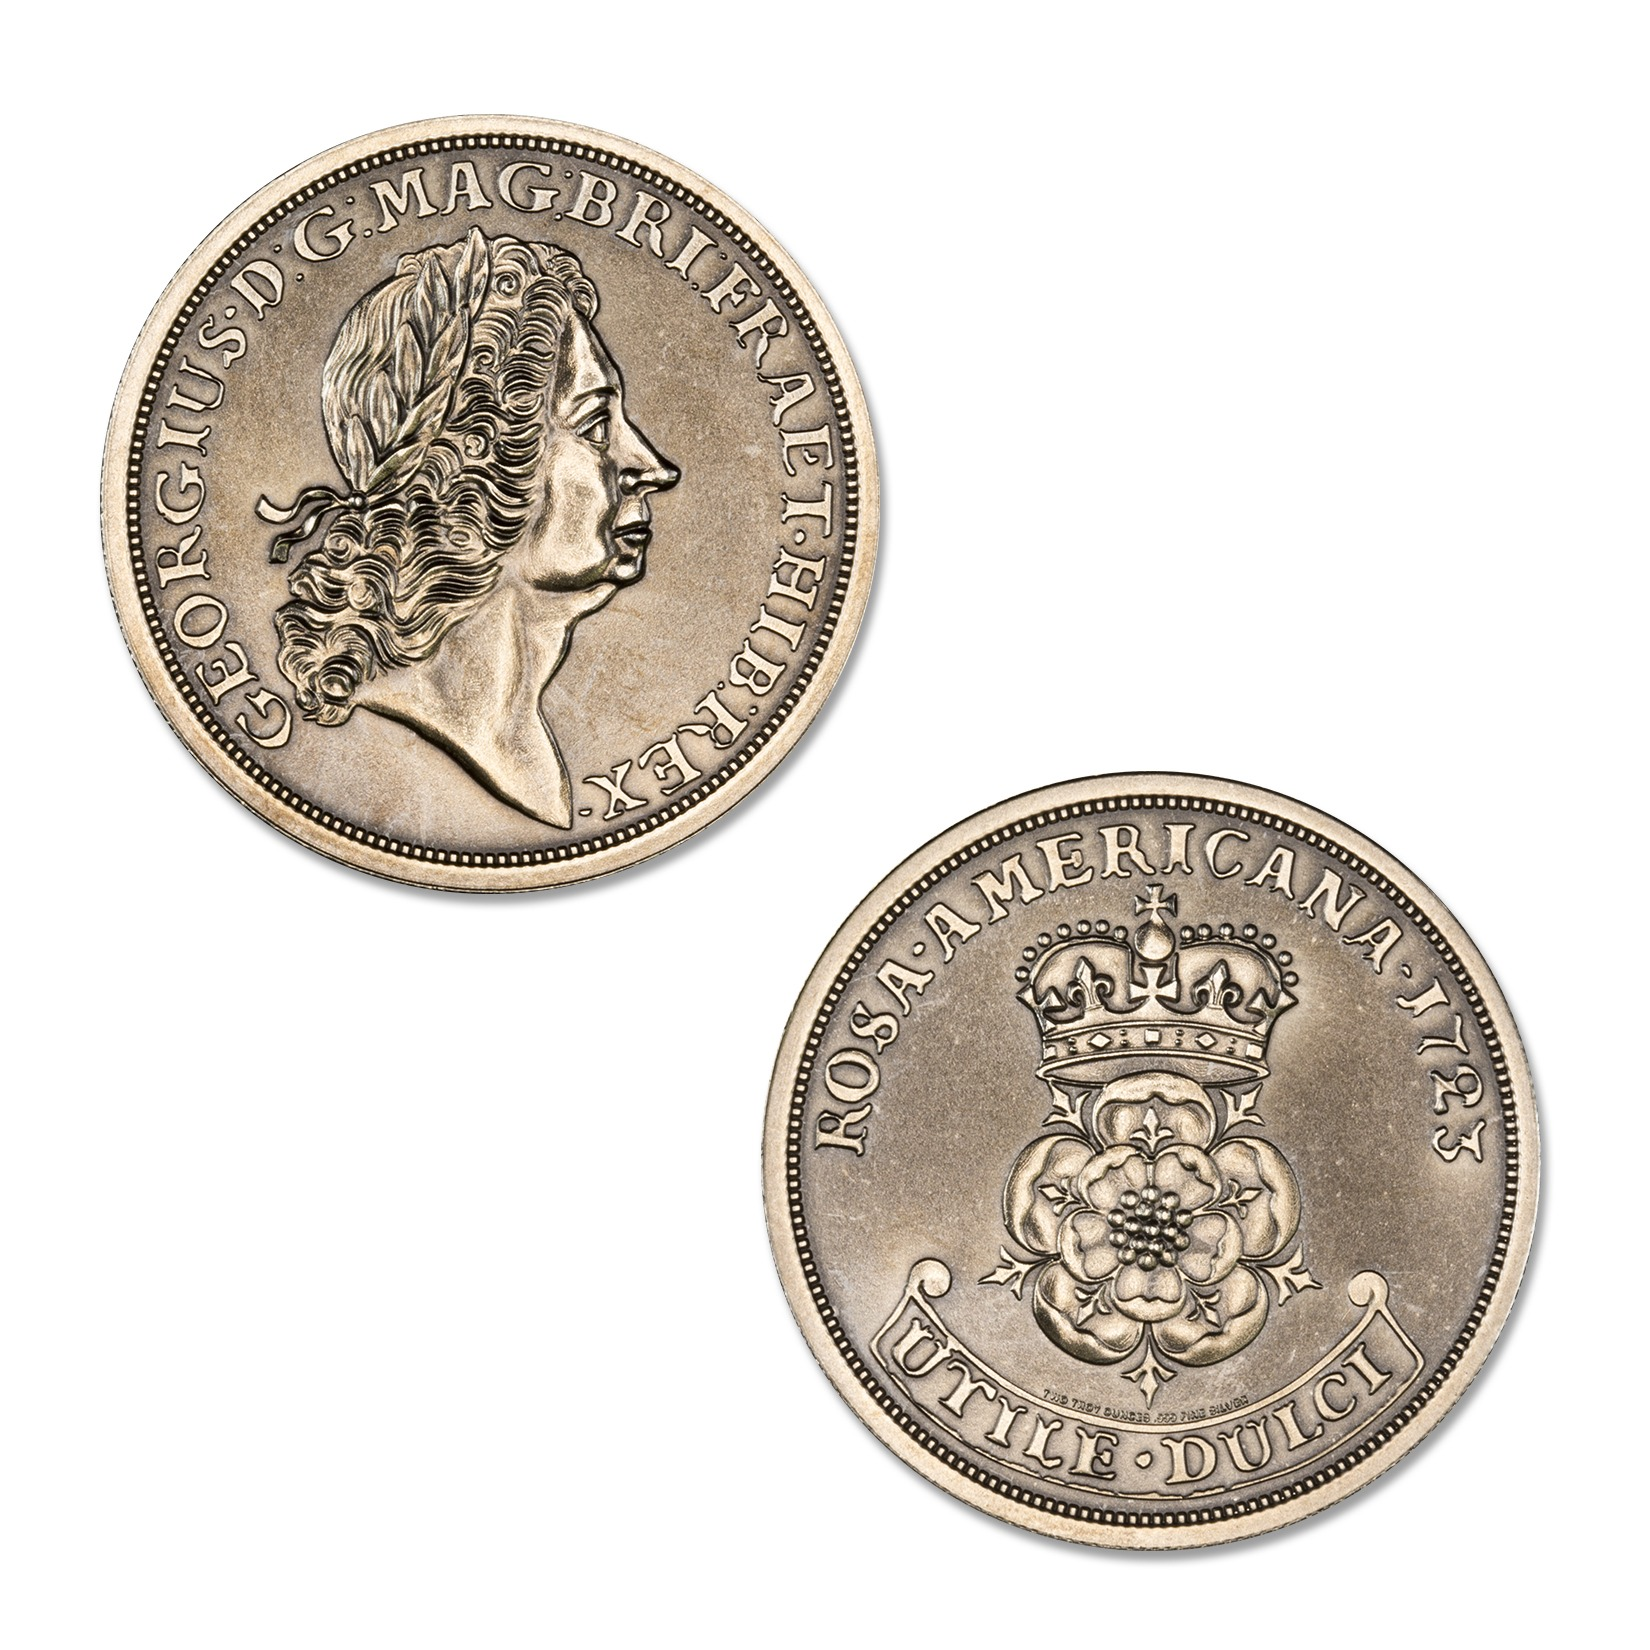 ROSA AMERICANA – 2 TROY OUNCE – 39MM (ANTIQUED)